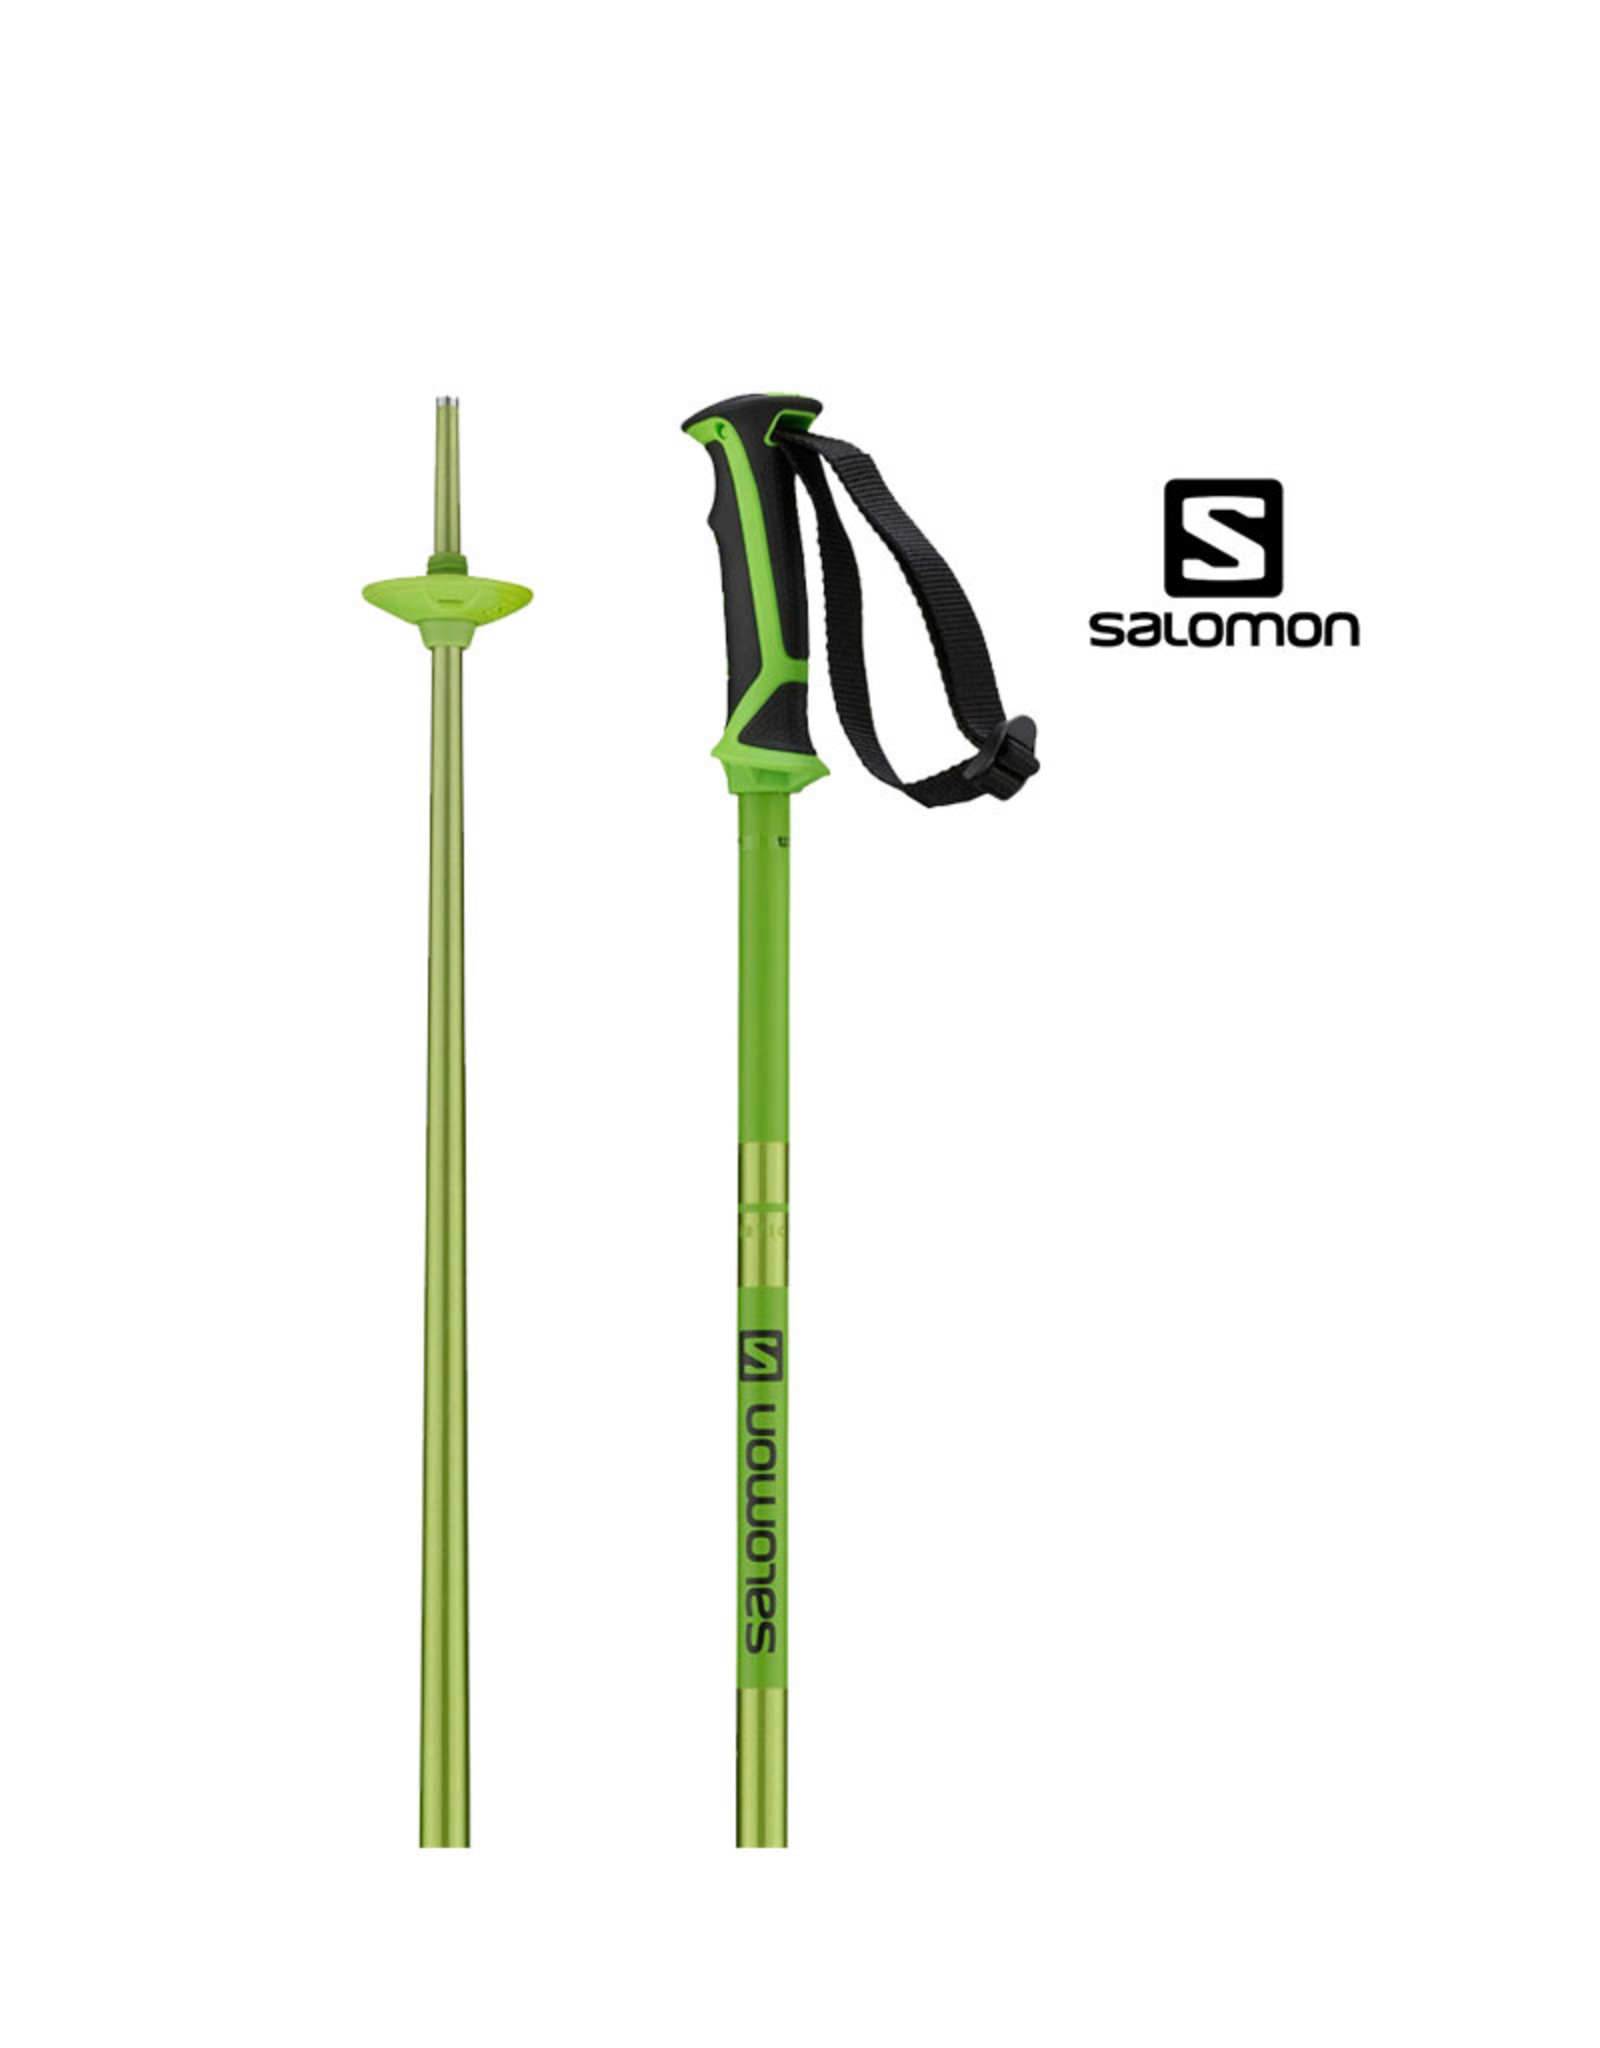 SALOMON SKISTOKKEN SALOMON Poles Arctic green